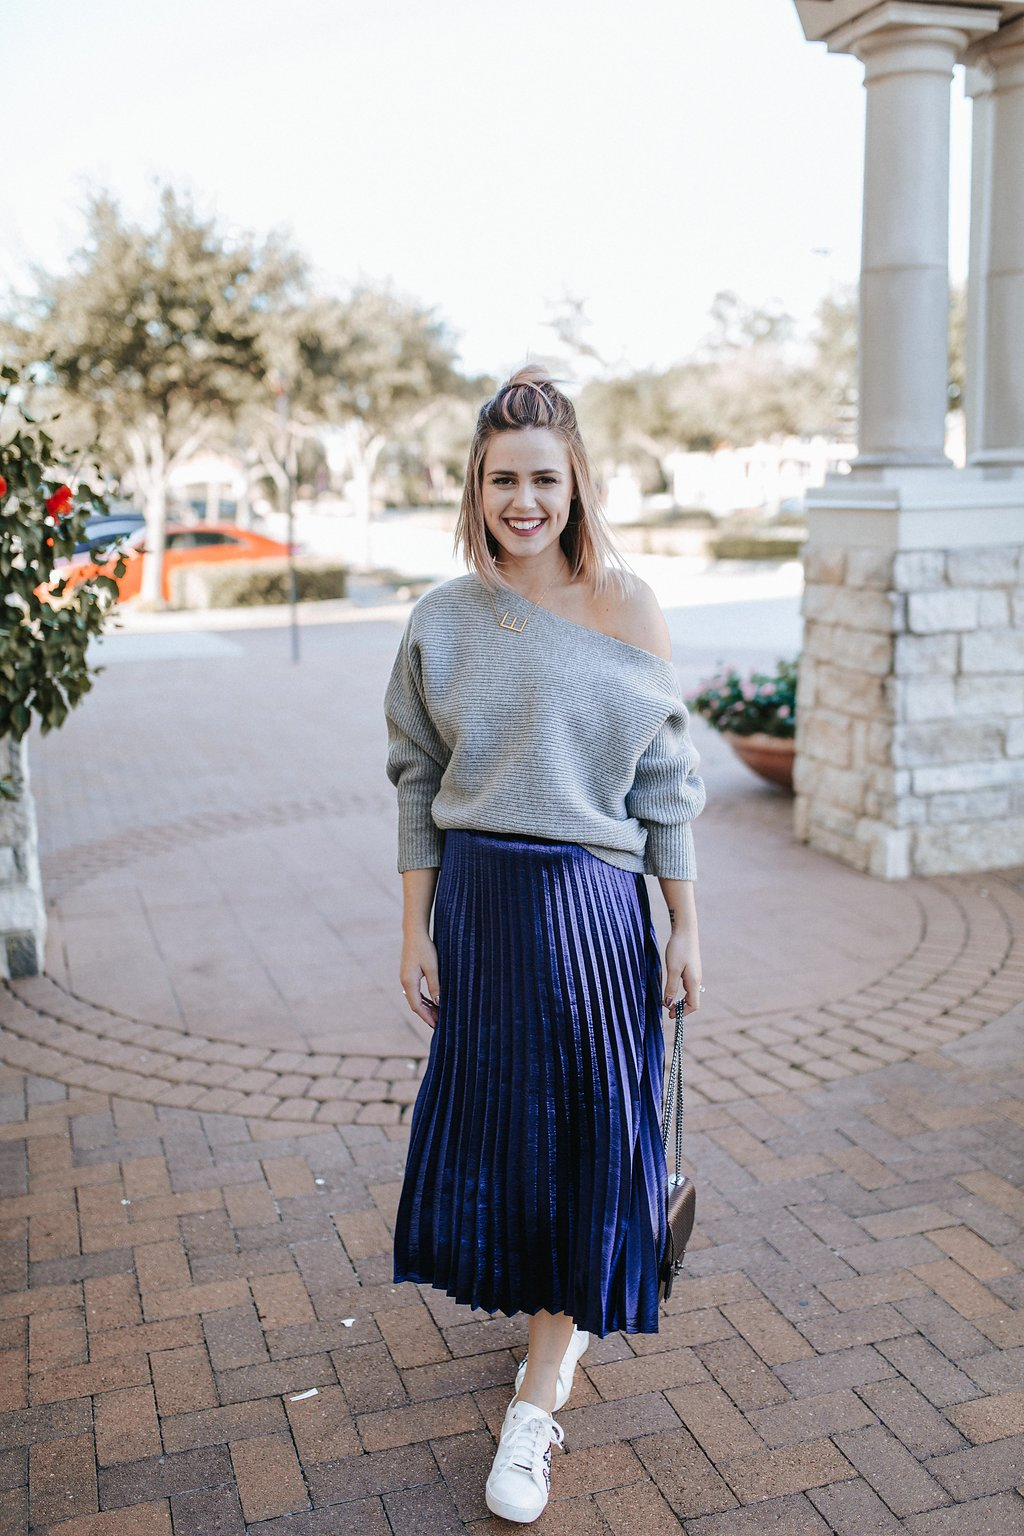 How to style a pleated midi skirt | Casual midi skirt look | Sweater and skirt outfit | Sneakers and skirt outfit | Uptown with Elly Brown